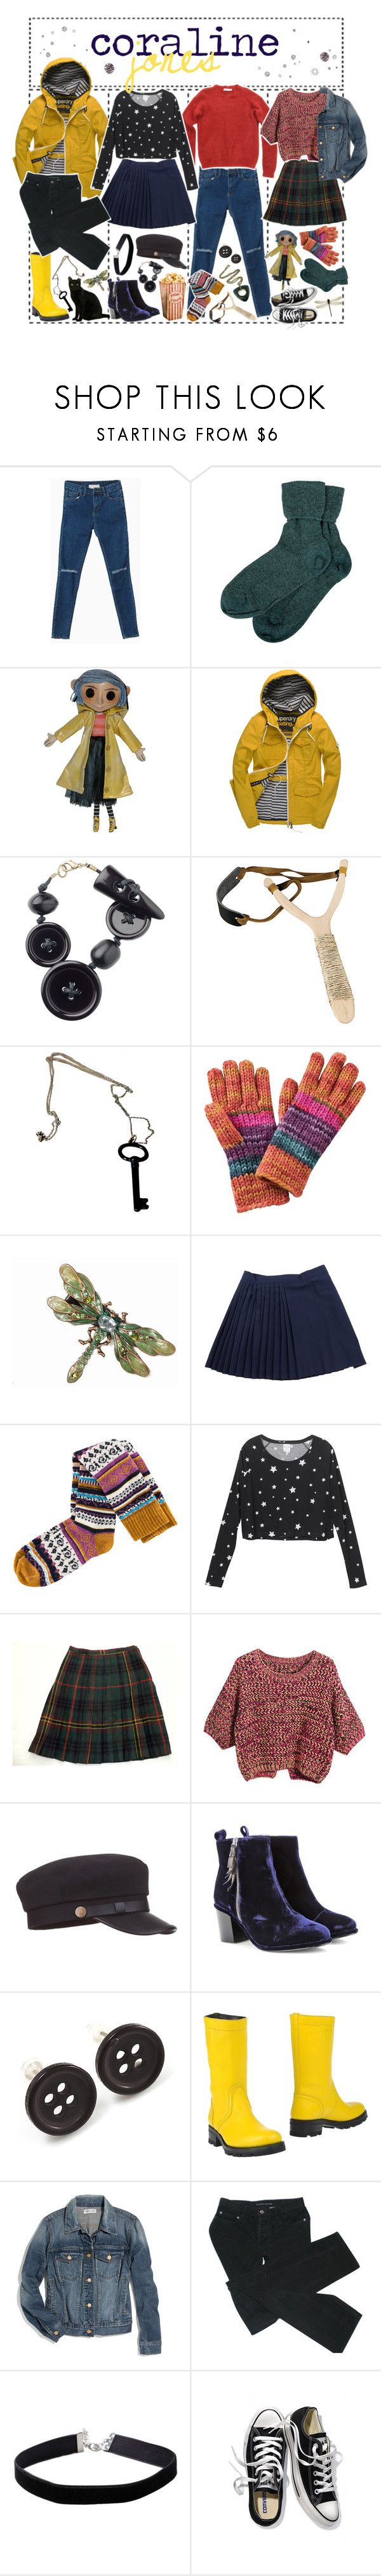 """""""so take me to the paradise in your eyes"""" by souless-teenager ❤ liked on Polyvore featuring Brora, Superdry, Toast, CO, H&M, STELLA McCARTNEY, Monki, Jones New York, Chicnova Fashion and Opening Ceremony"""